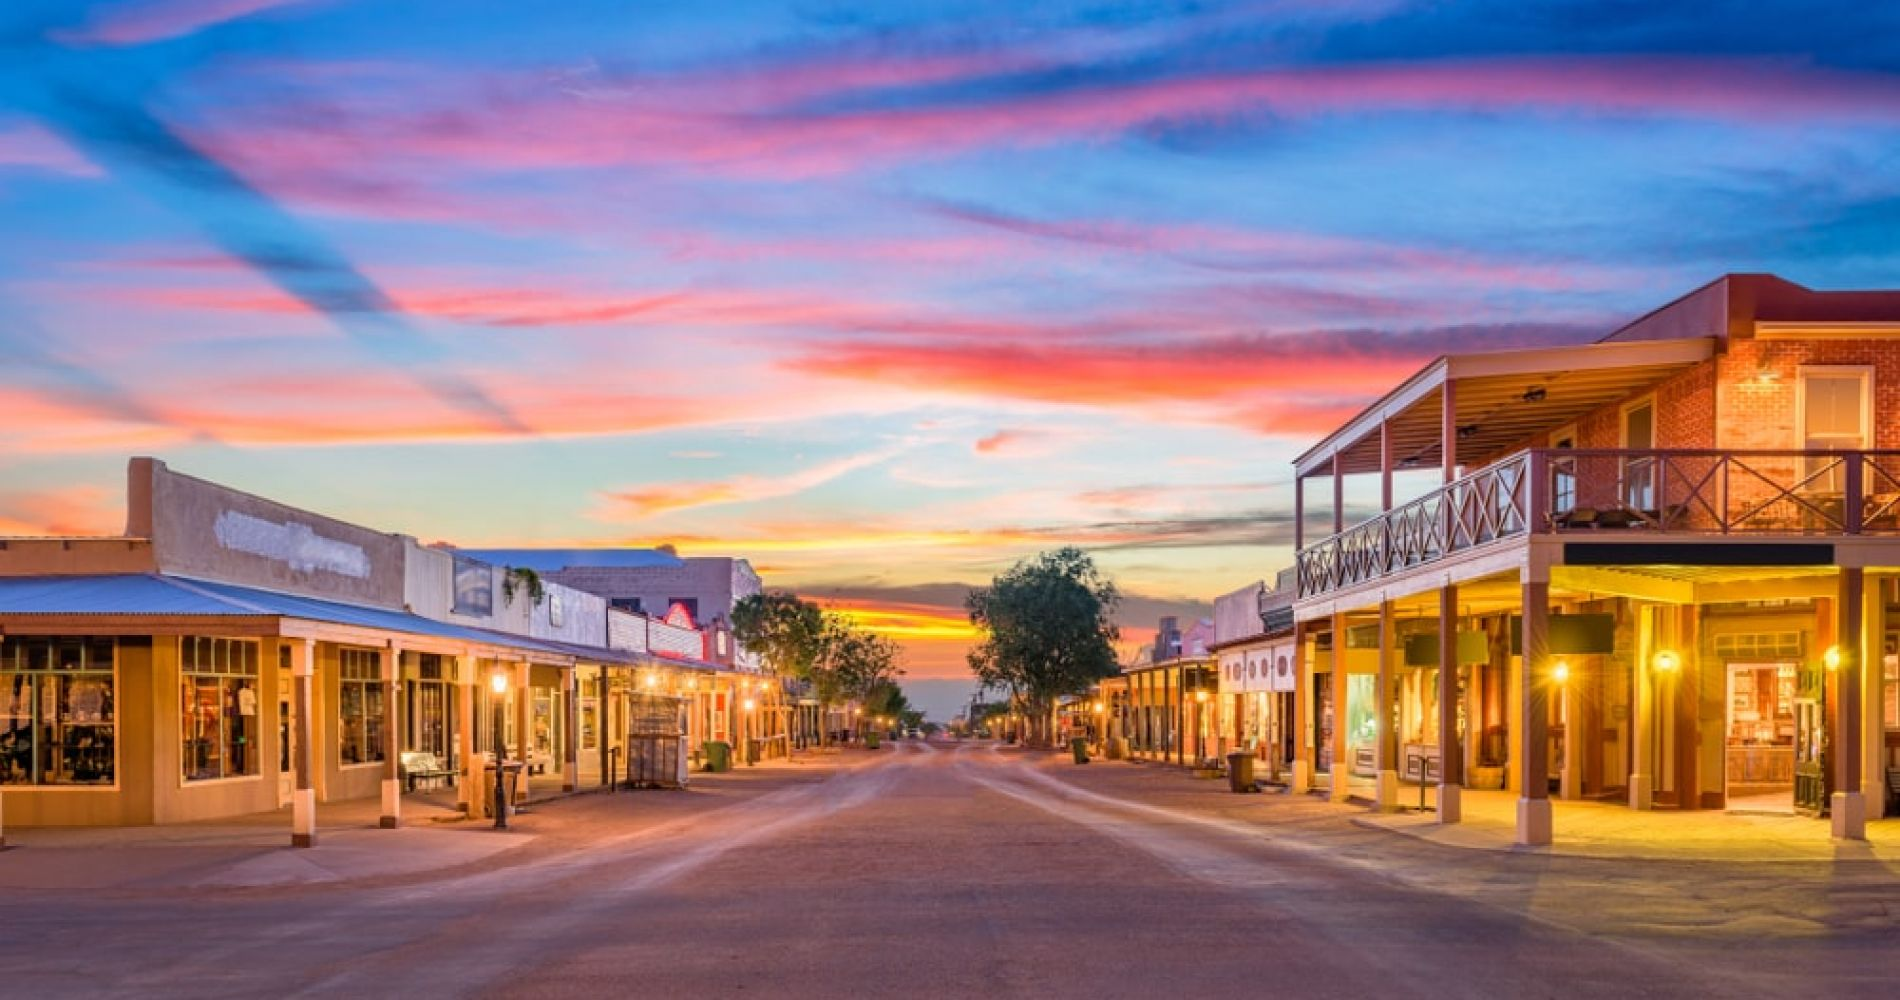 Travel in Time in Tombstone the Old Western Town in Arizona